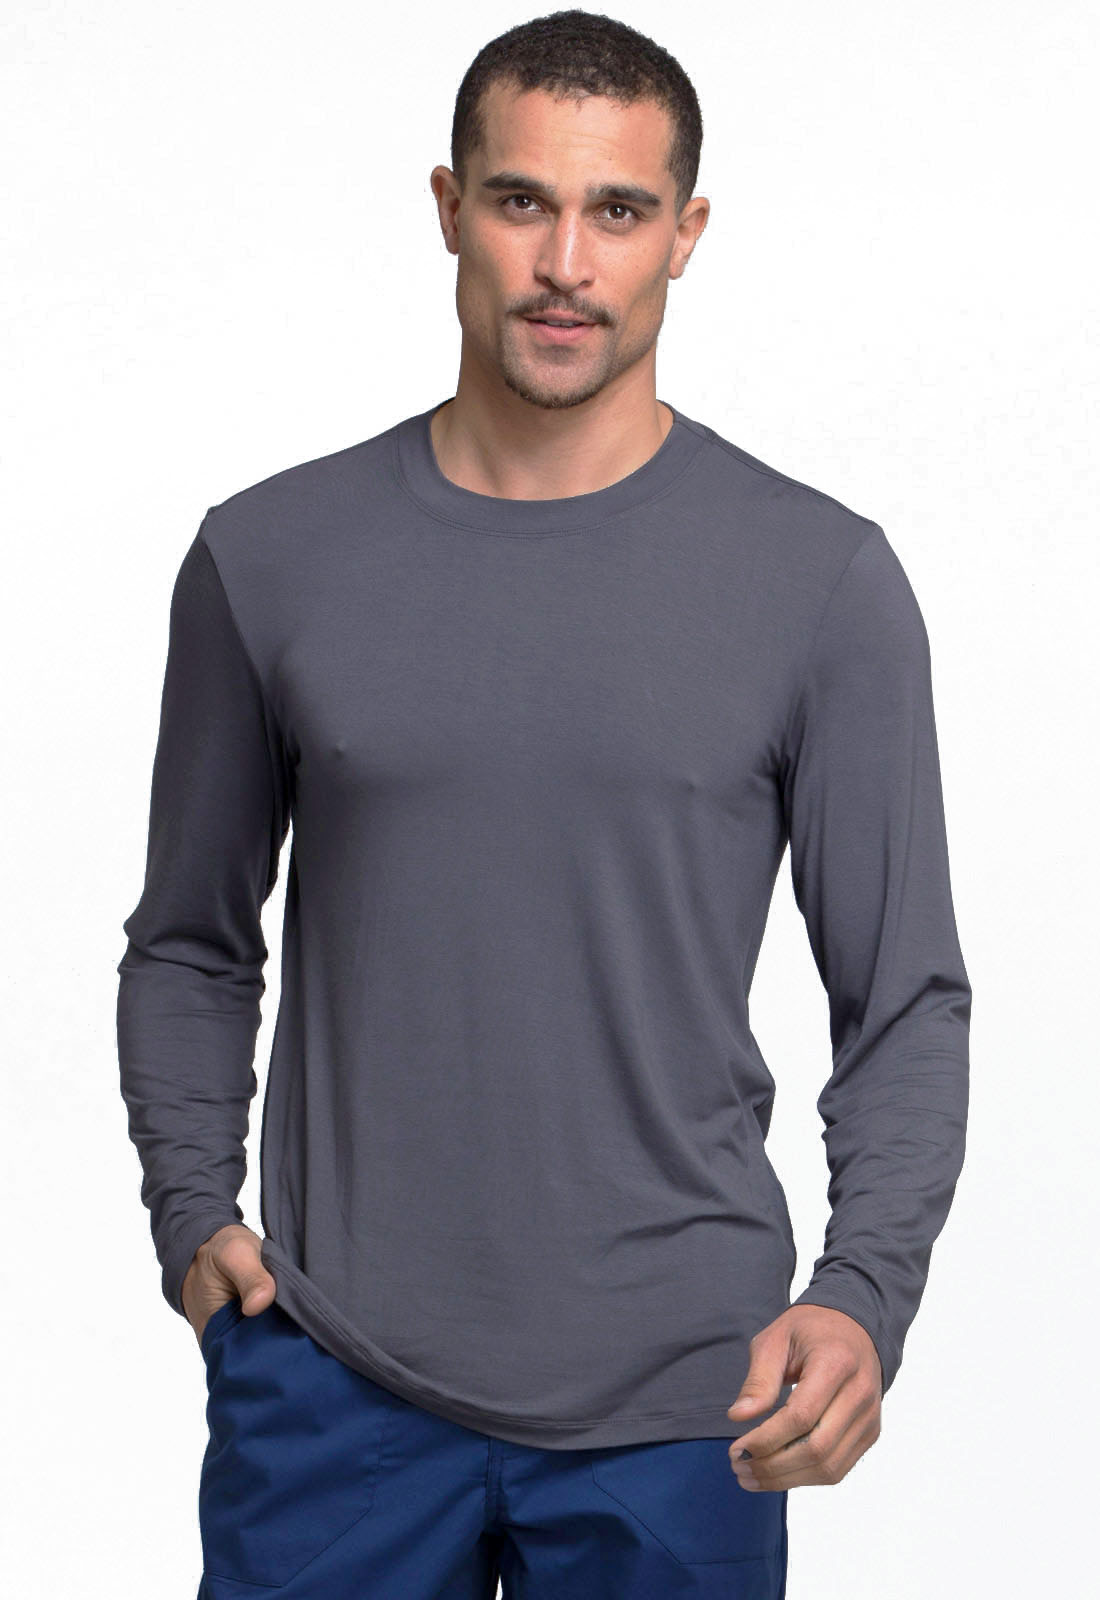 f340bbb3454 WW Professionals Men's Underscrub Knit Top in Pewter WW700-PWT from ...